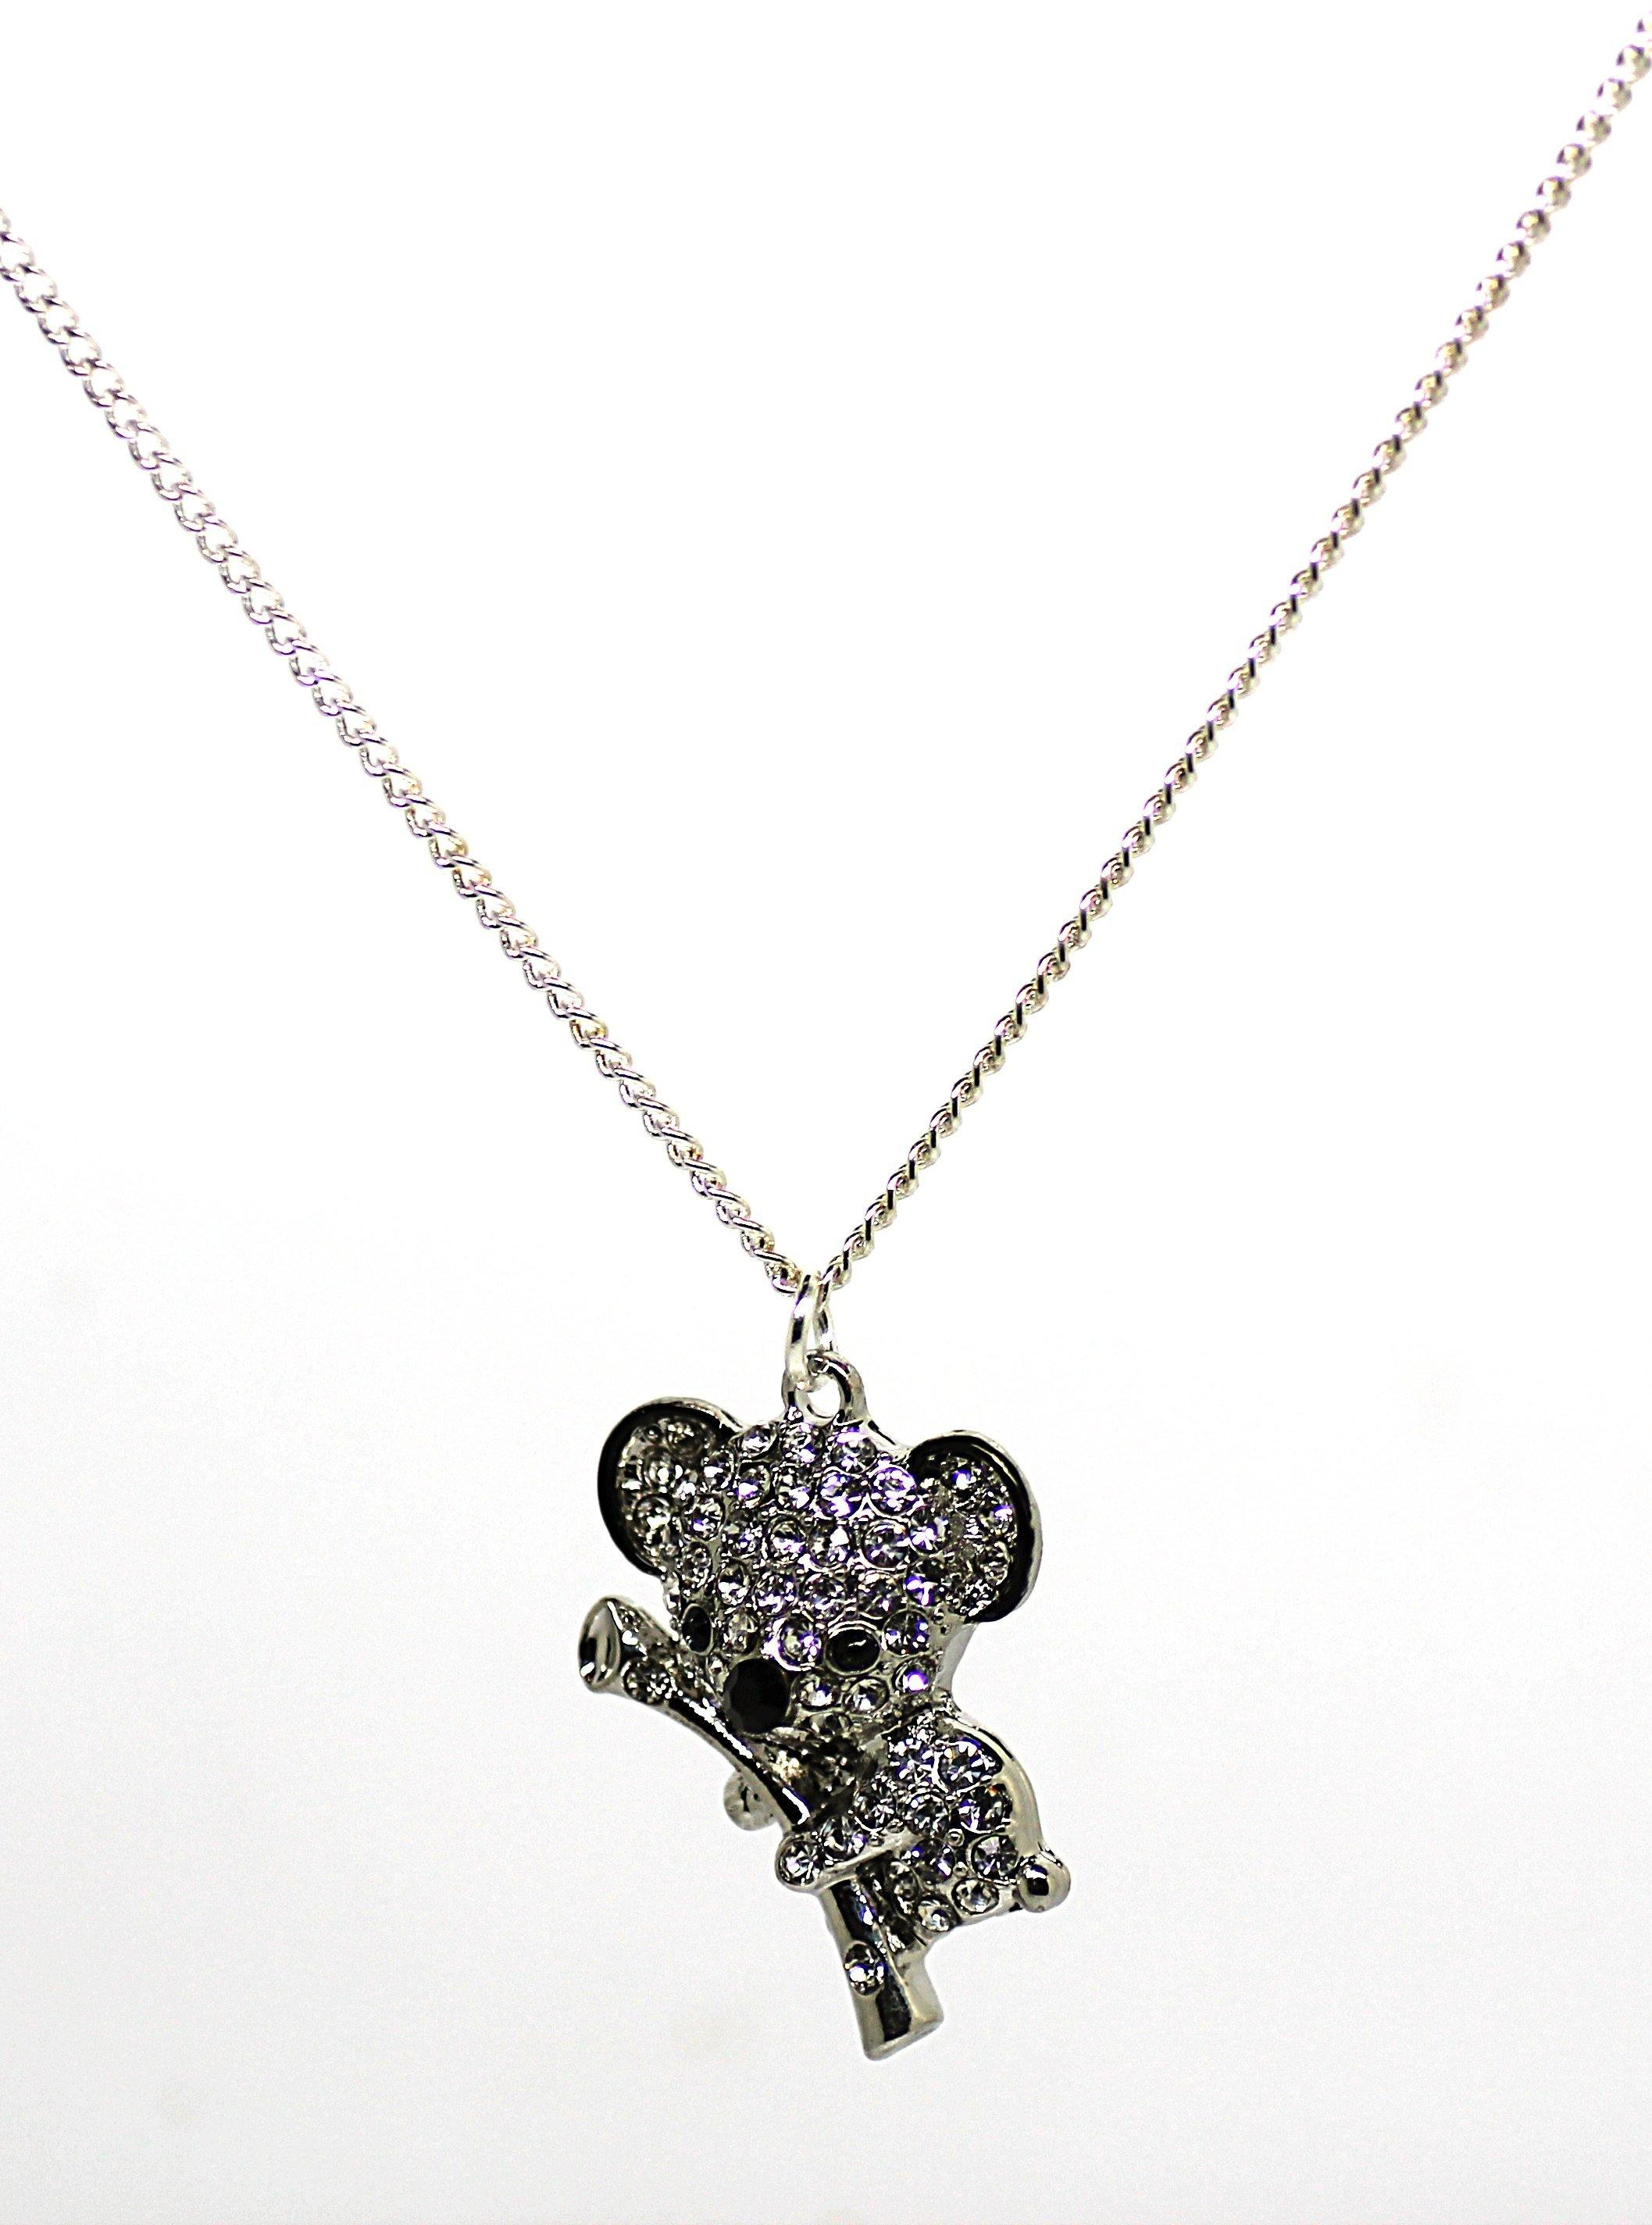 Koala Clear Necklace - Wildtouch - Wildtouch